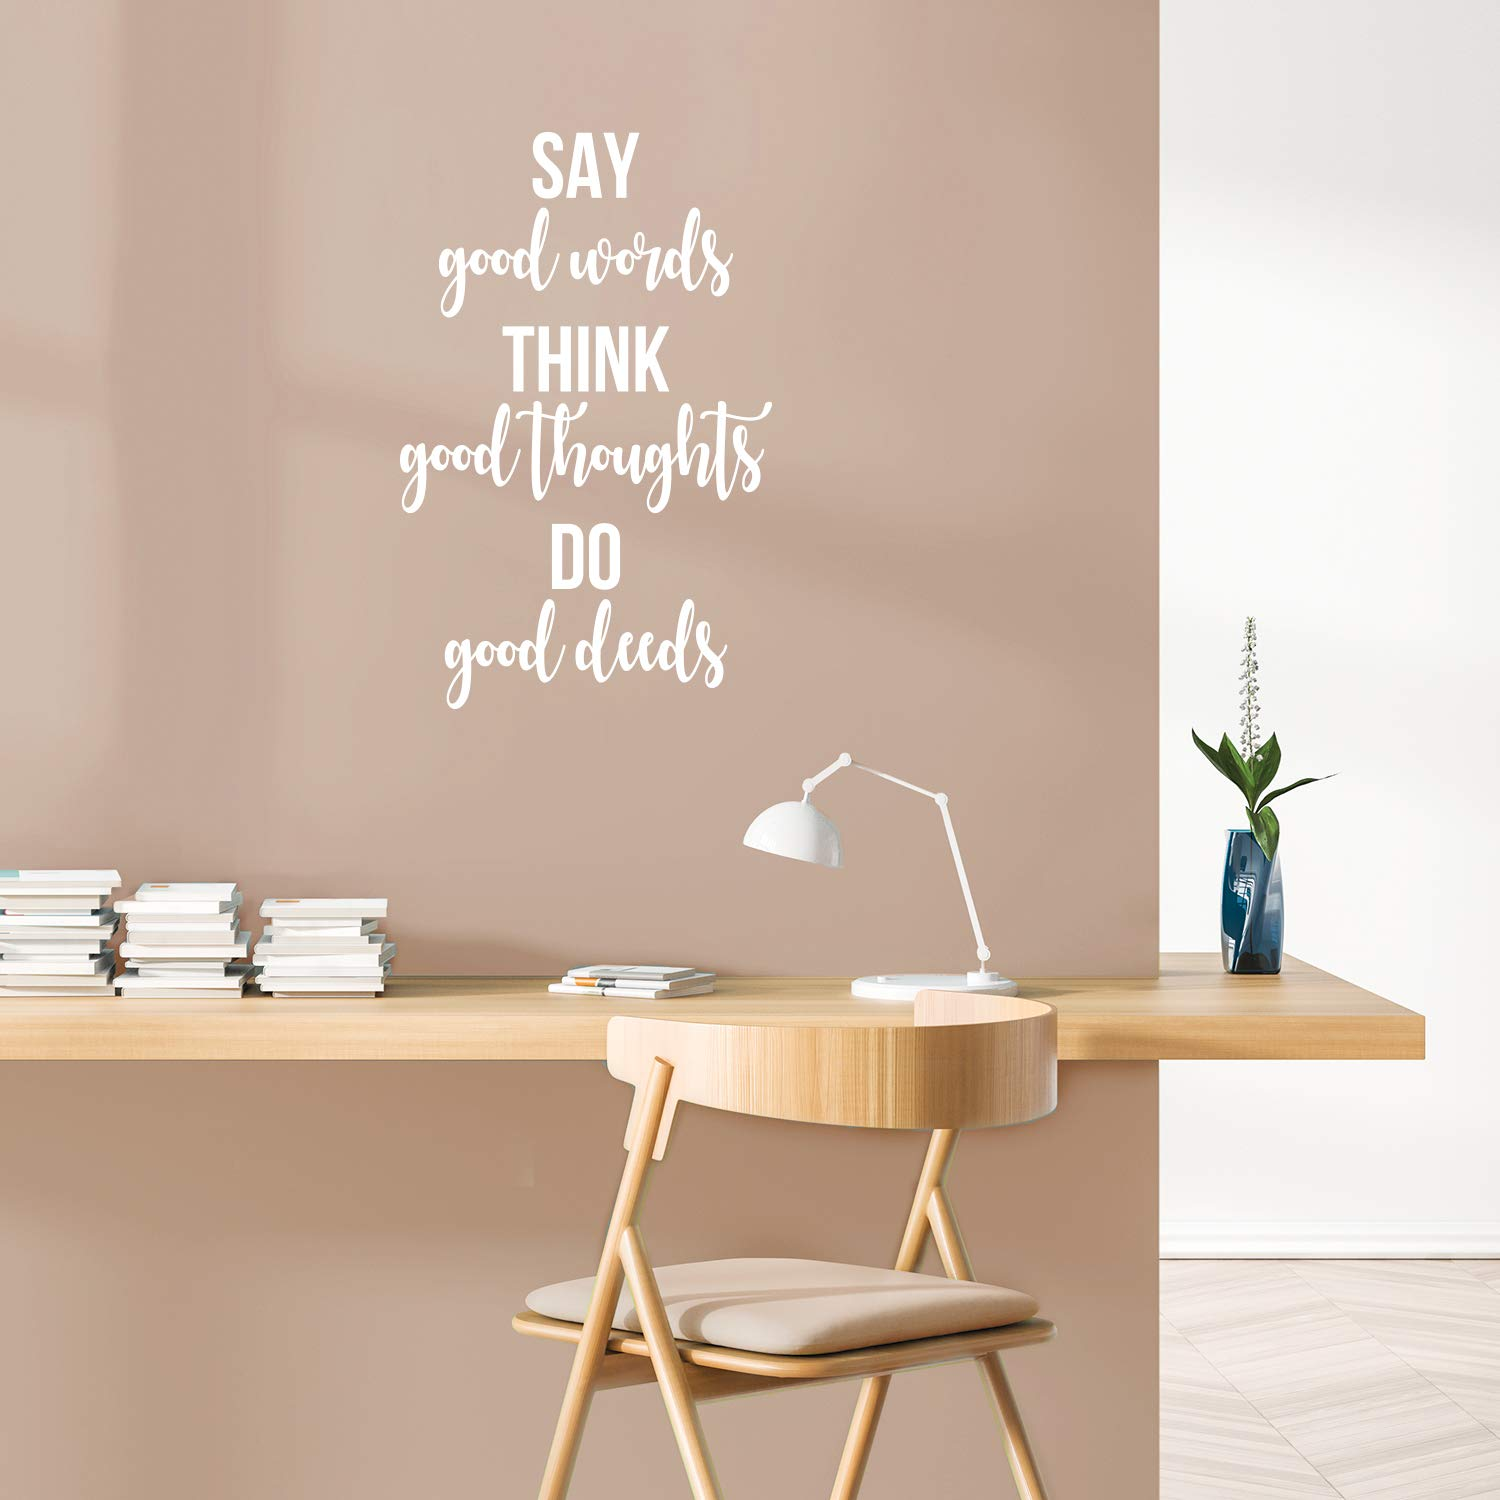 Vinyl Wall Art Decal - Say Good Words Thoughts Do Good Deeds - 26